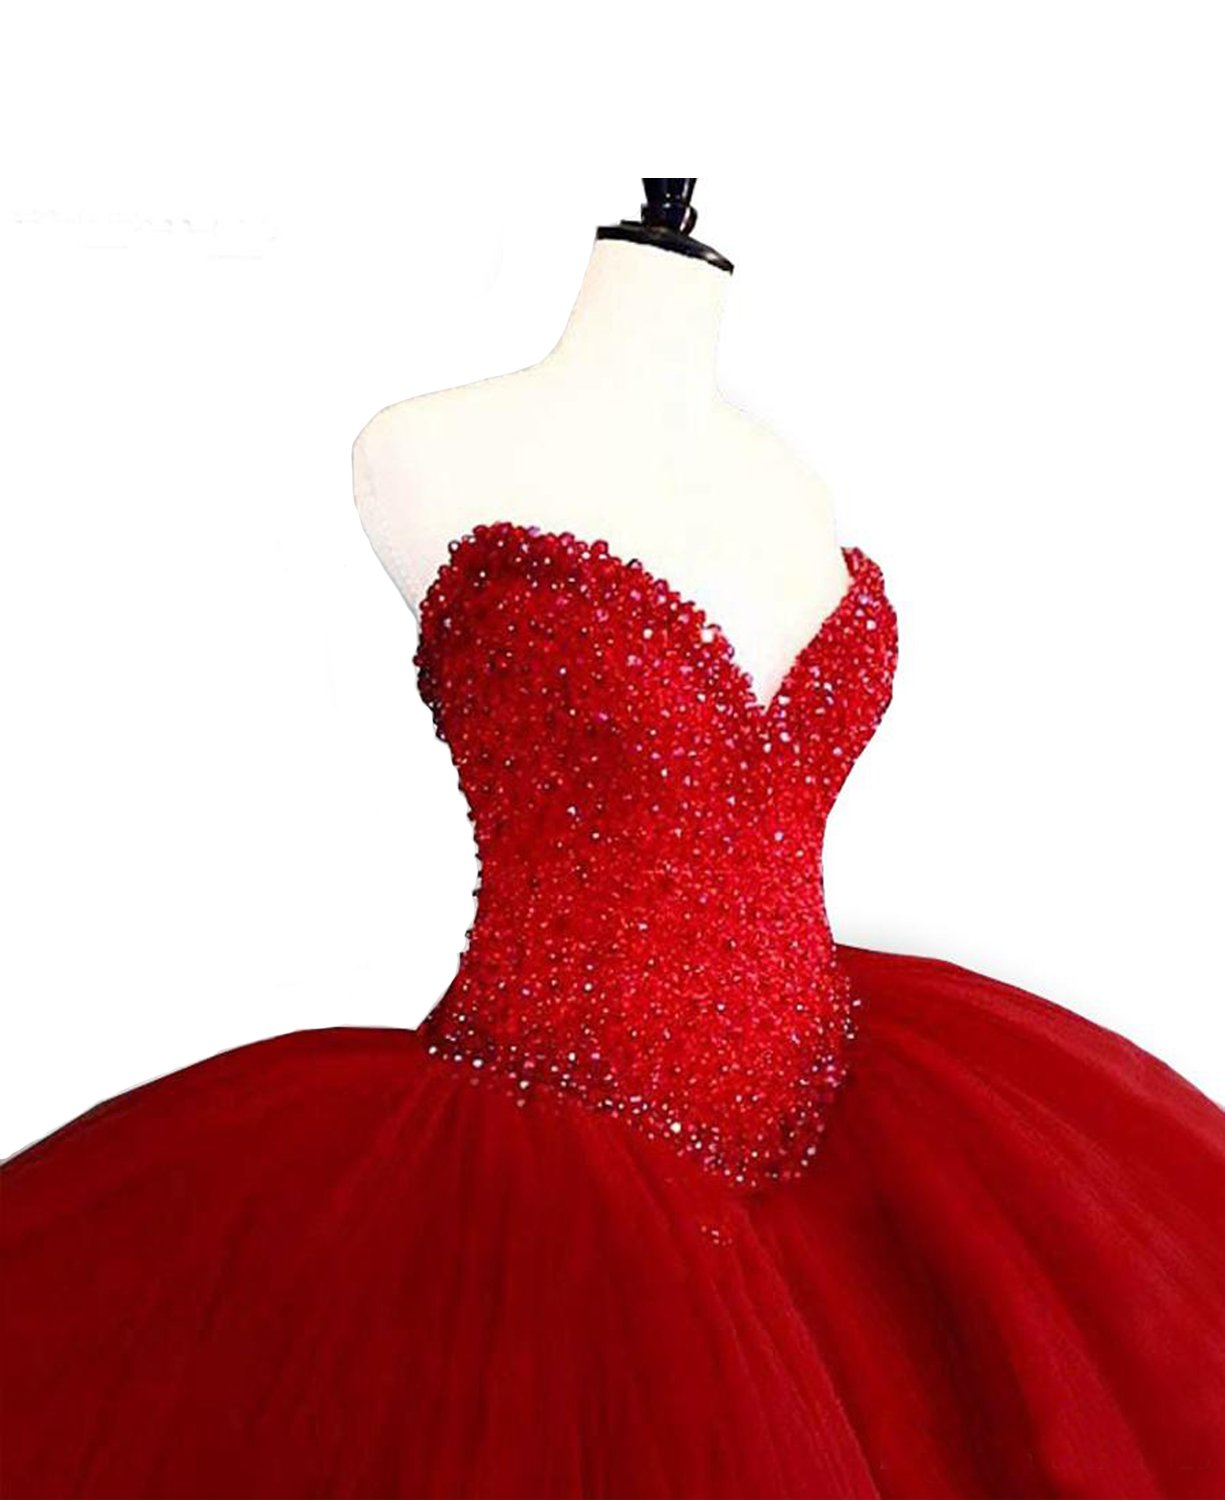 Ruisha Puffy Red Quinceanera Dresses Sweetheart Top Beading Sweet 16 Ball Gowns Birthday Party Gowns Size 10 Hot Red